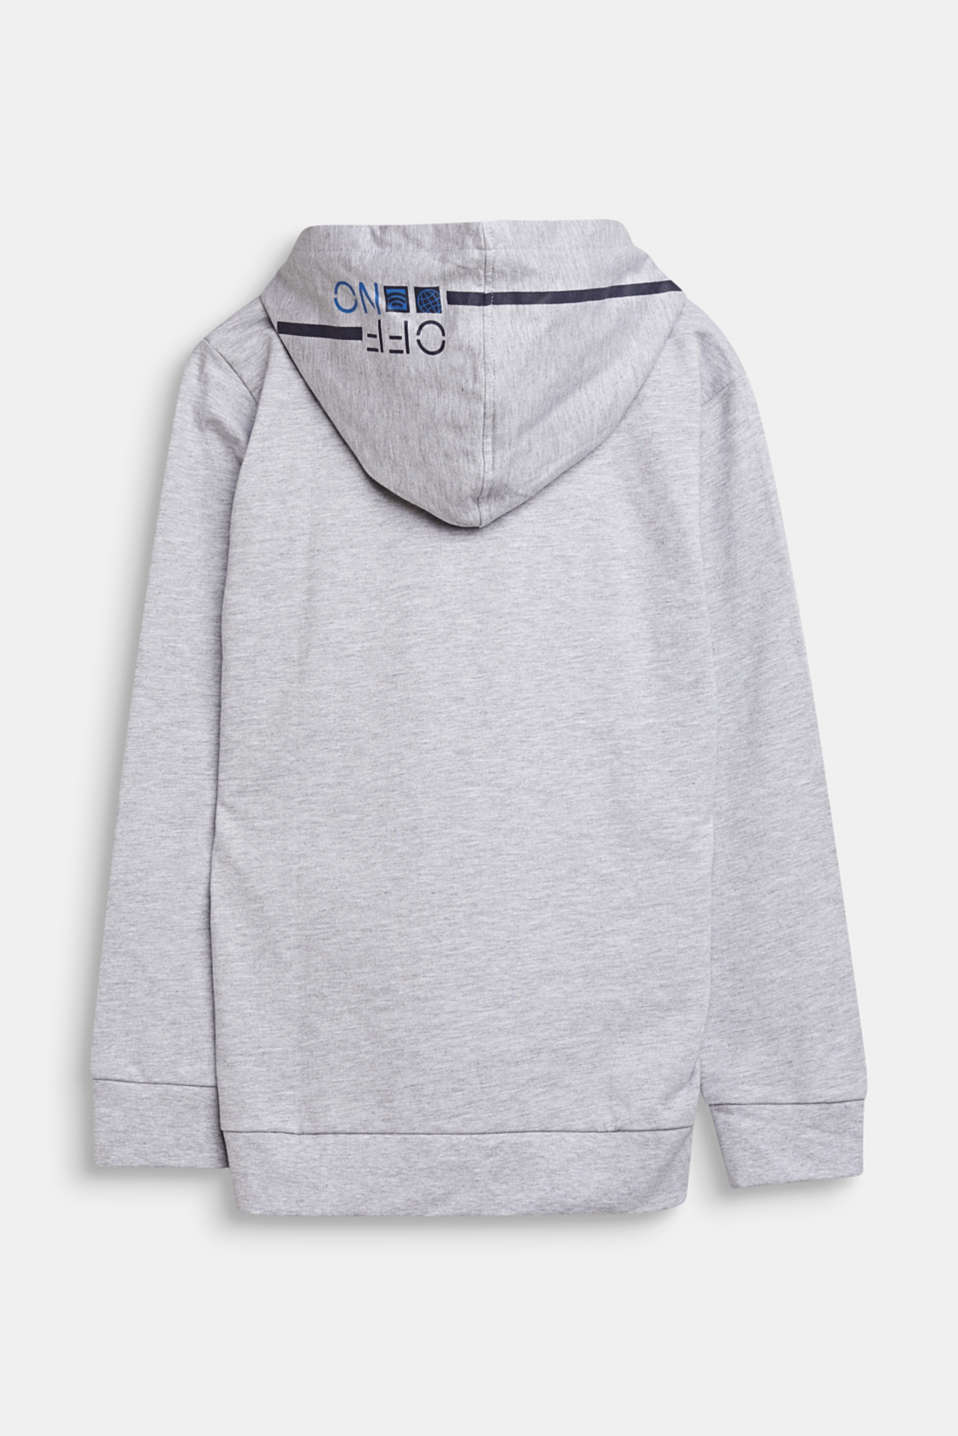 Sweatshirt hoodie with print, 100% cotton, LCHEATHER SILVER, detail image number 1